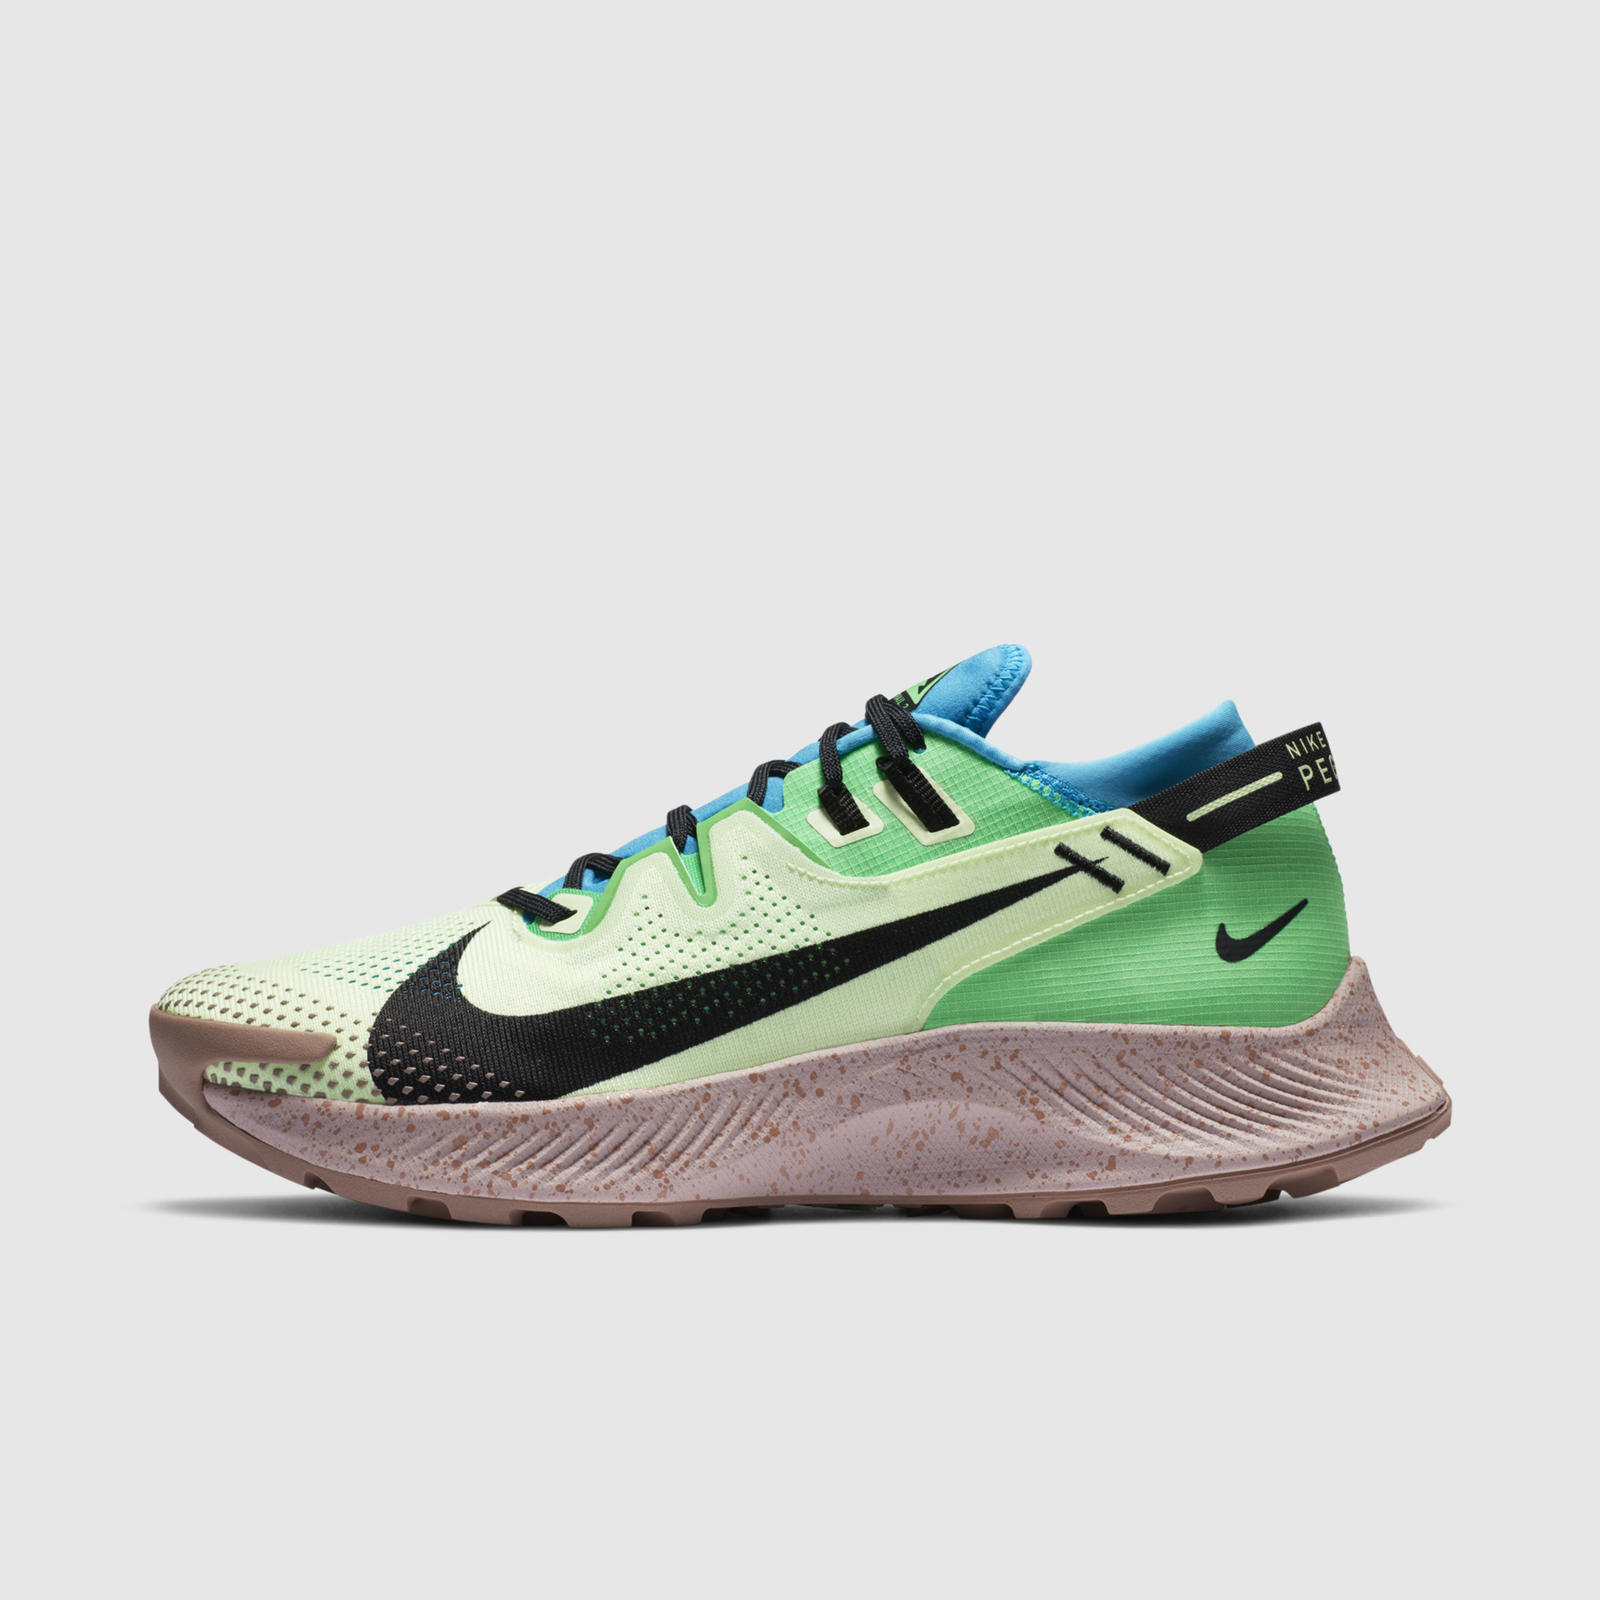 Nike Trail Wildhorse 6 Air Zoom Terra Kiger 6 Official Images and Release Date 18